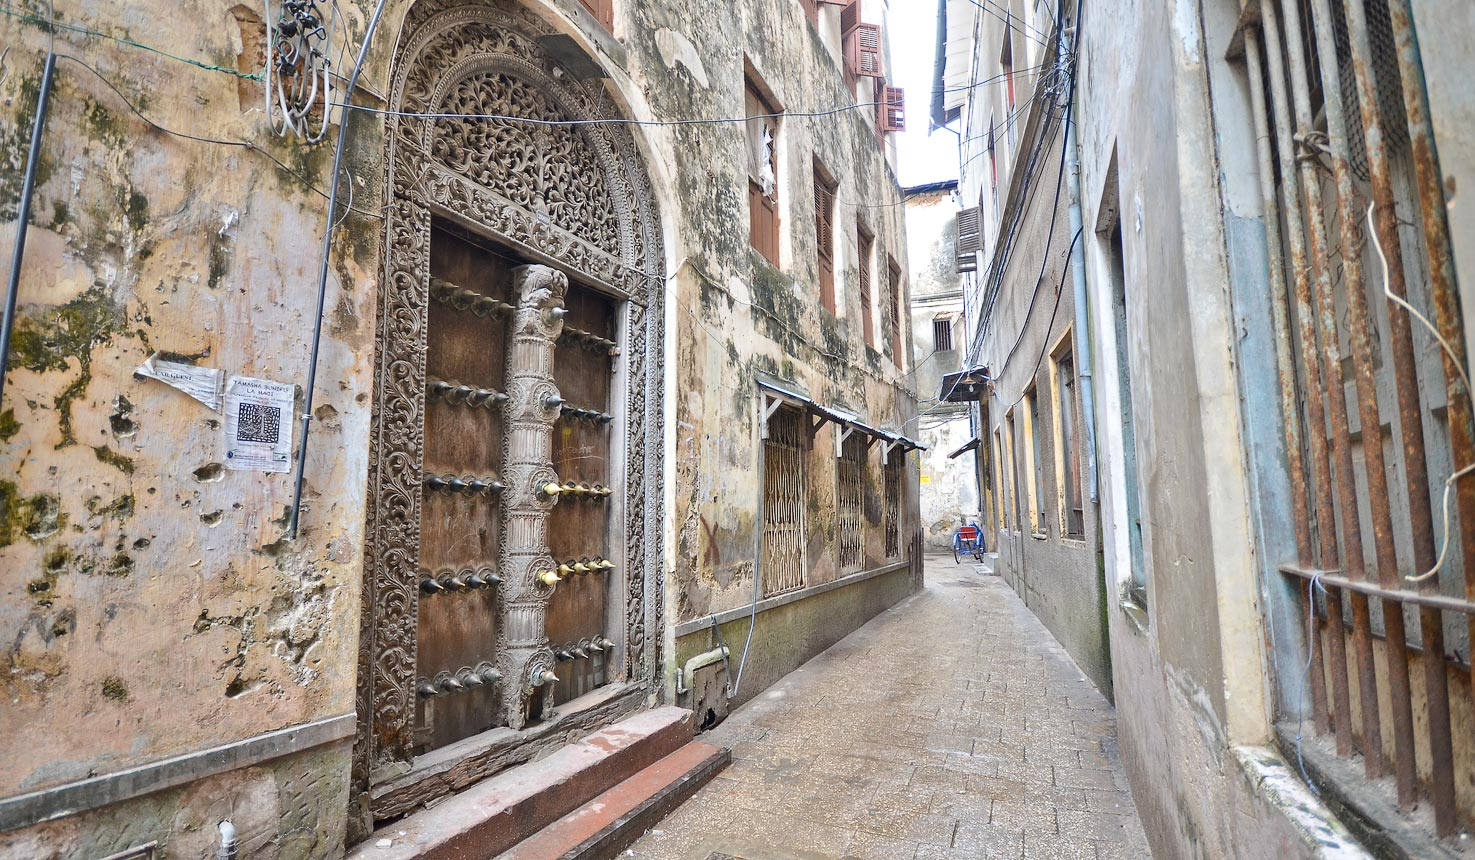 Stone Town, Zanzibar - This form was iframed into the website. It was originally built with cognitoforms (https://www.cognitoforms.com/EverdonBureauDeChange/OrderForm) hence we need access to the account that was used to build the form before we can make changes to it.